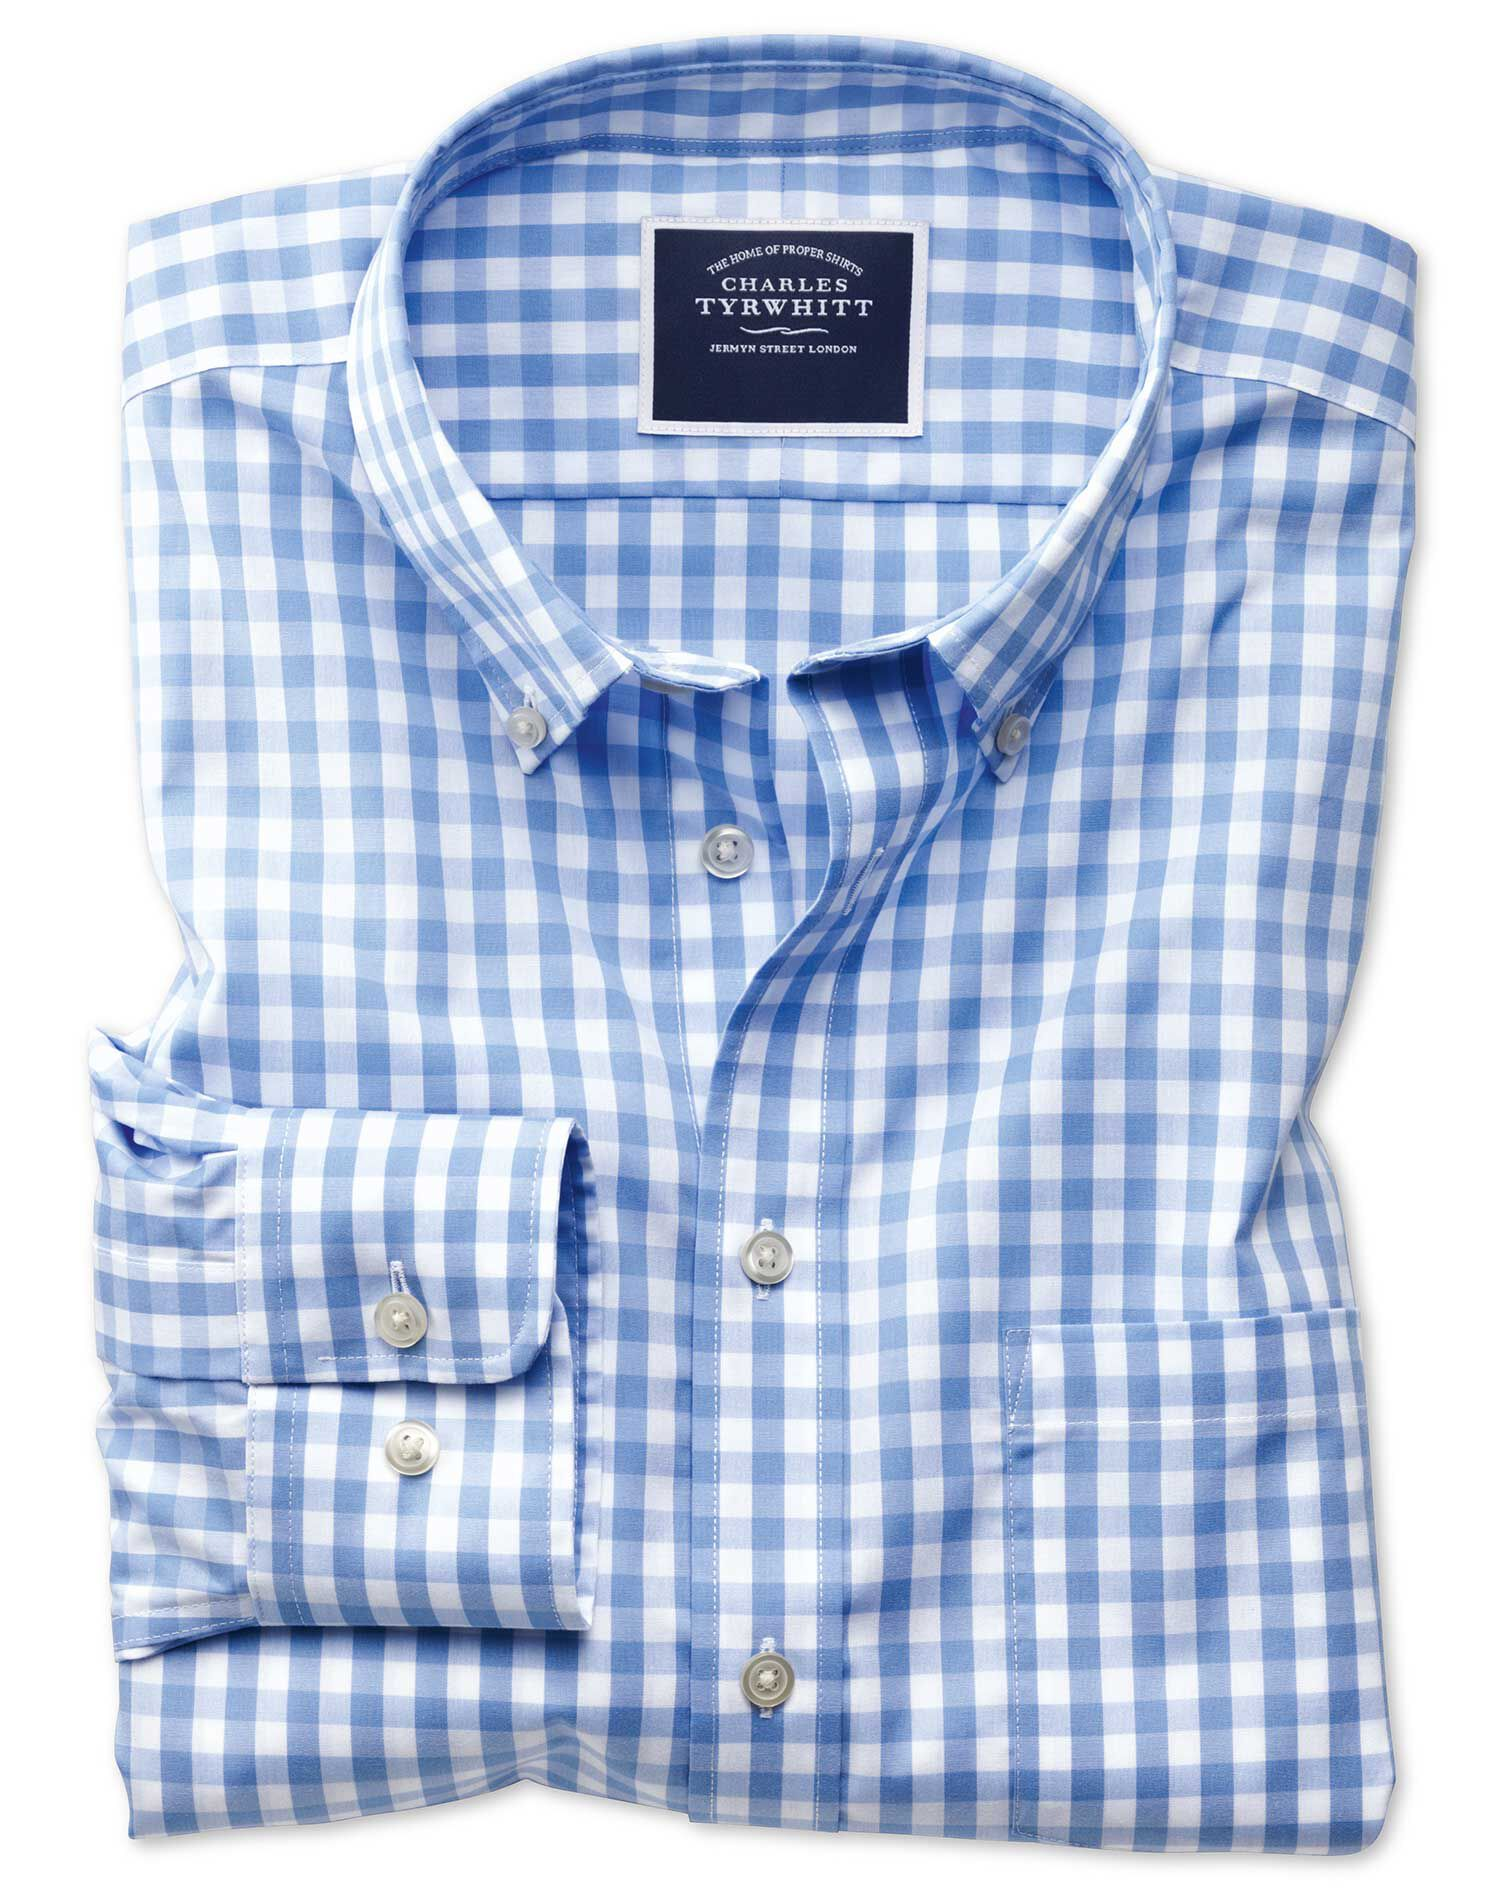 Classic Fit Non-Iron Poplin Sky Blue Gingham Cotton Shirt Single Cuff Size Large by Charles Tyrwhitt